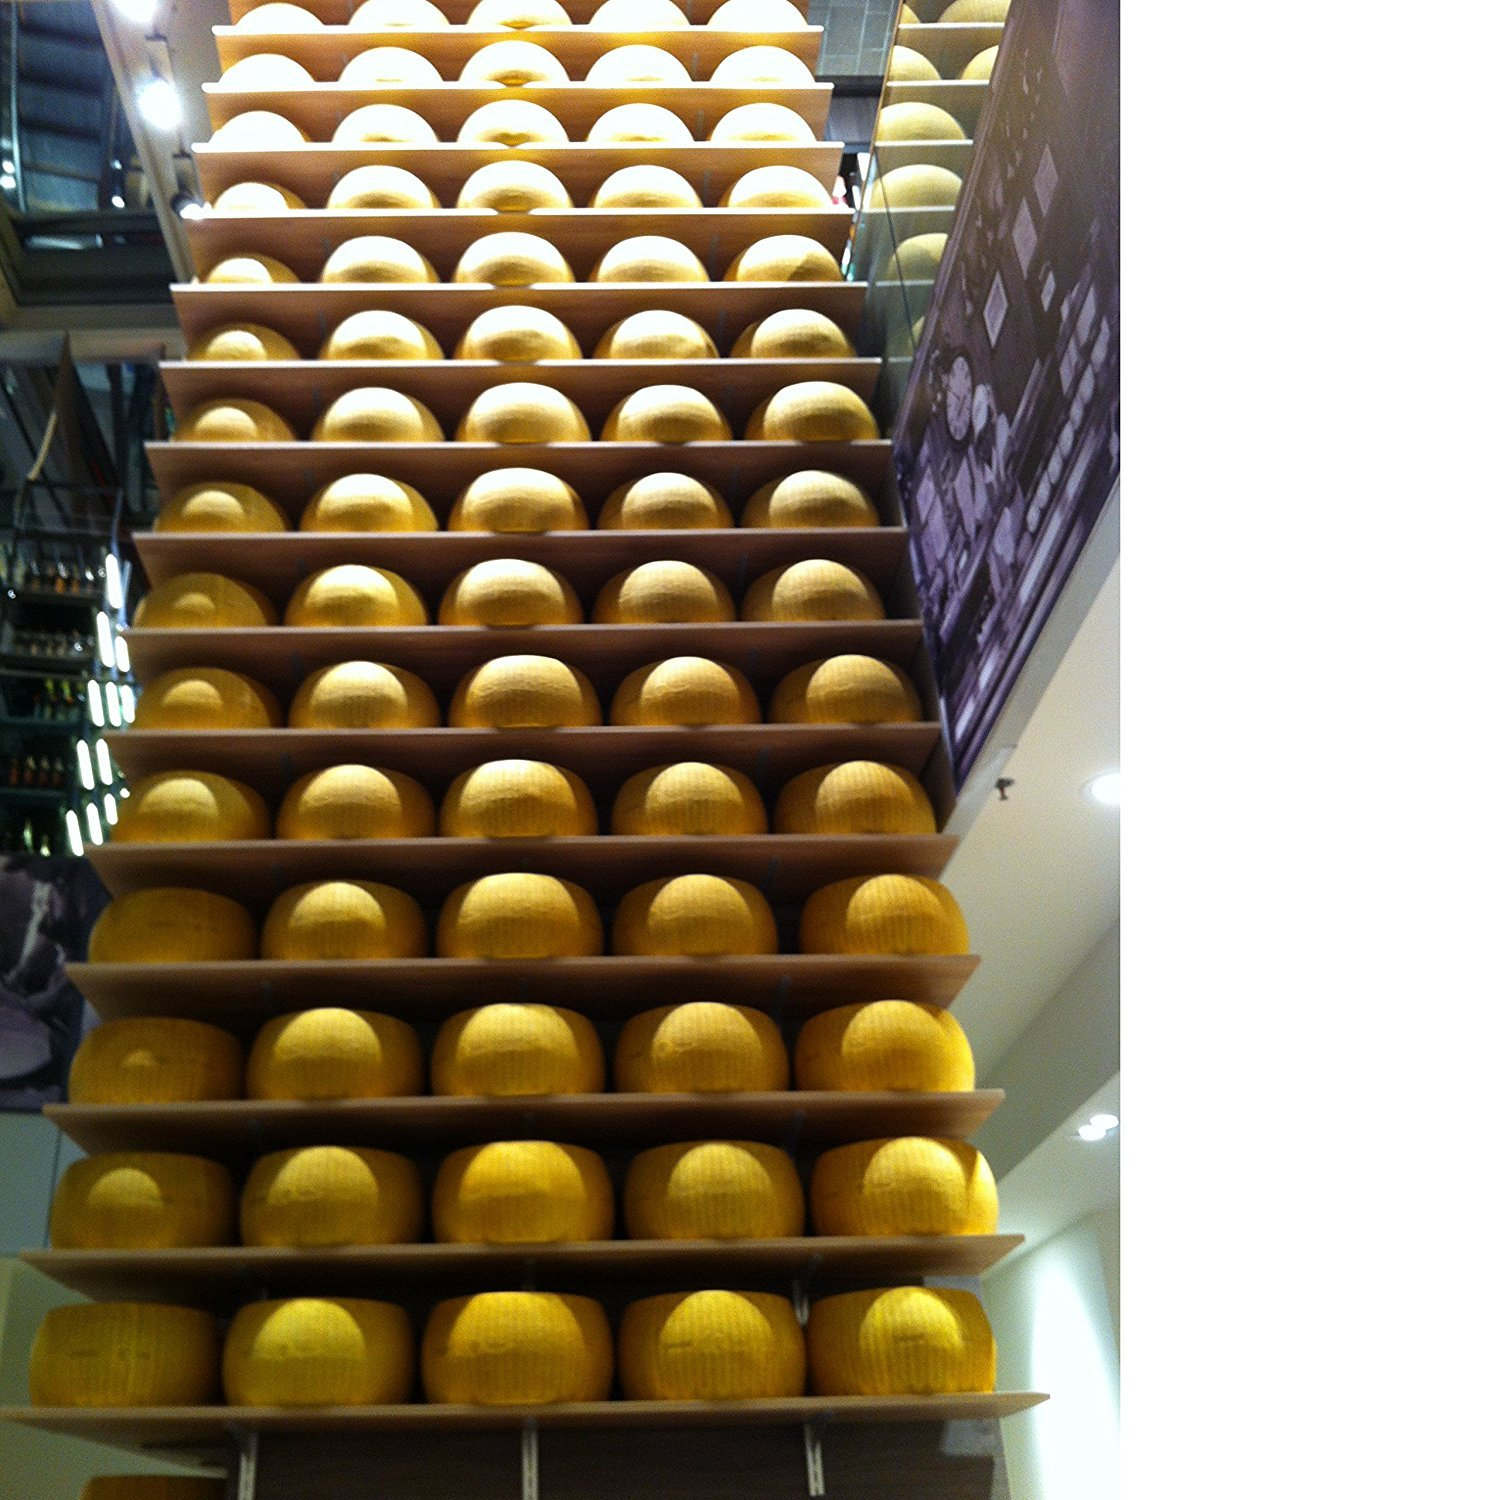 Parmigiano Reggiano PDO ''Saliceto'' from hill, Half wheel, seasoned 24 months, weighing.- 42 lbs by Parmigano Reggiano